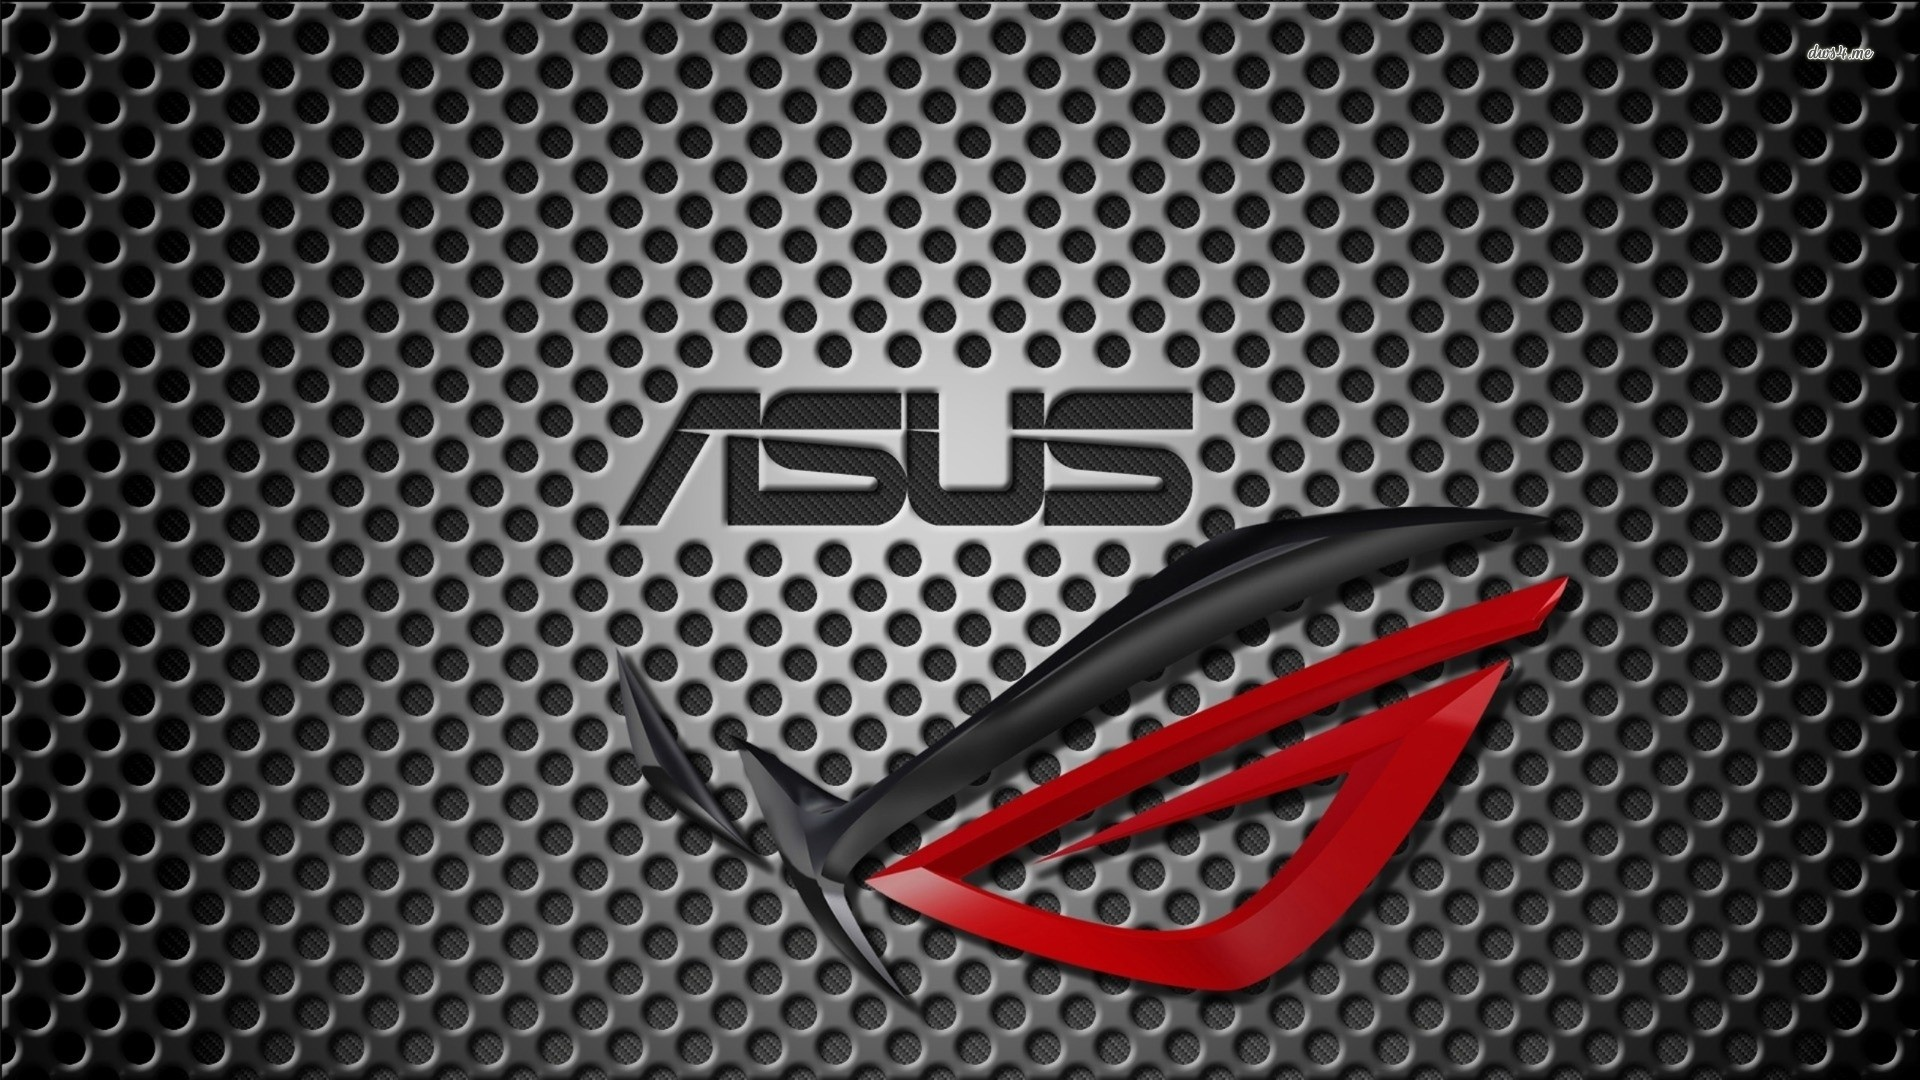 Widescreen Wallpapers of Asus Tablet, Cool Photo